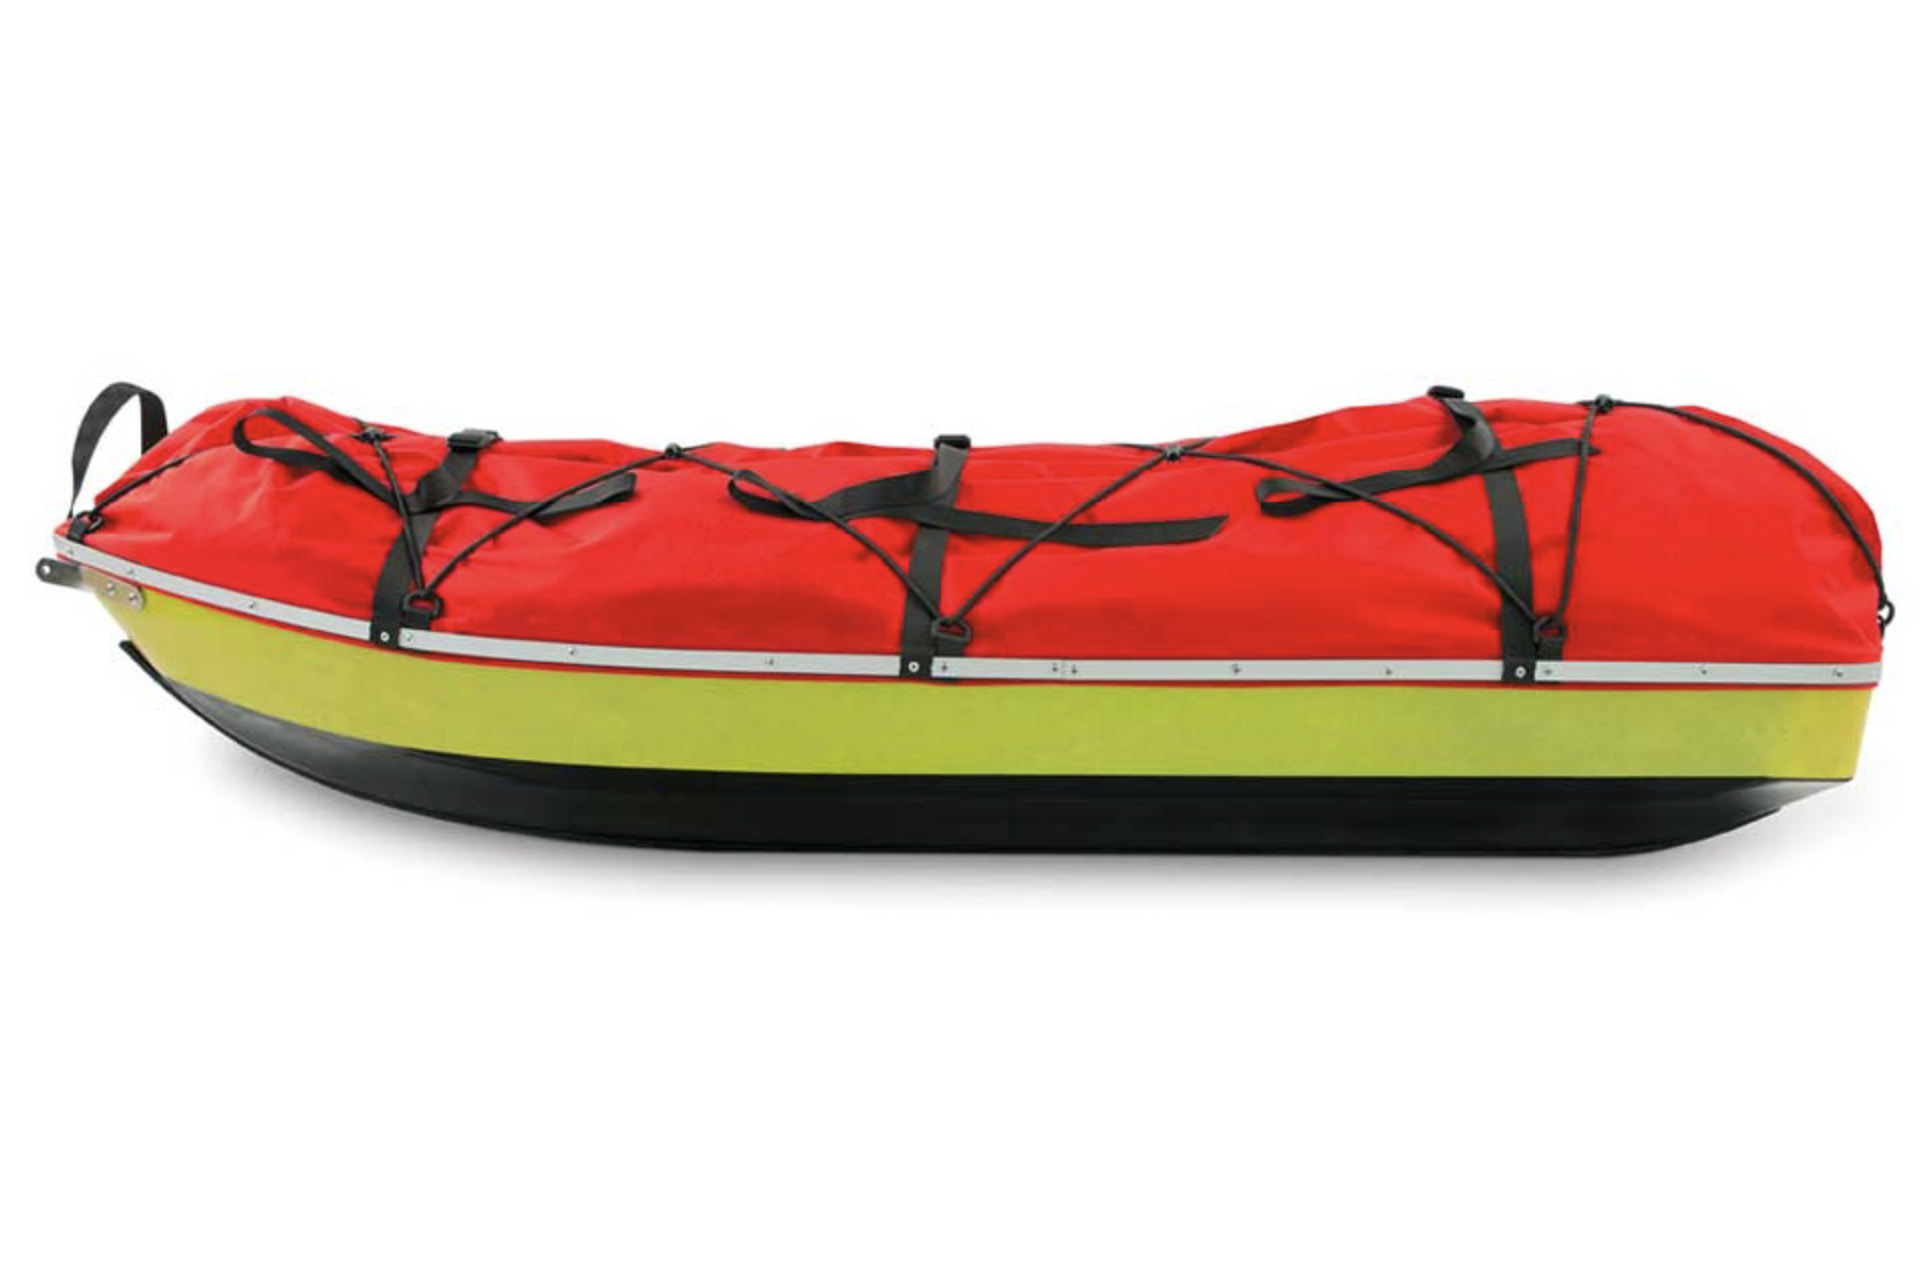 pulks/expedition sleds